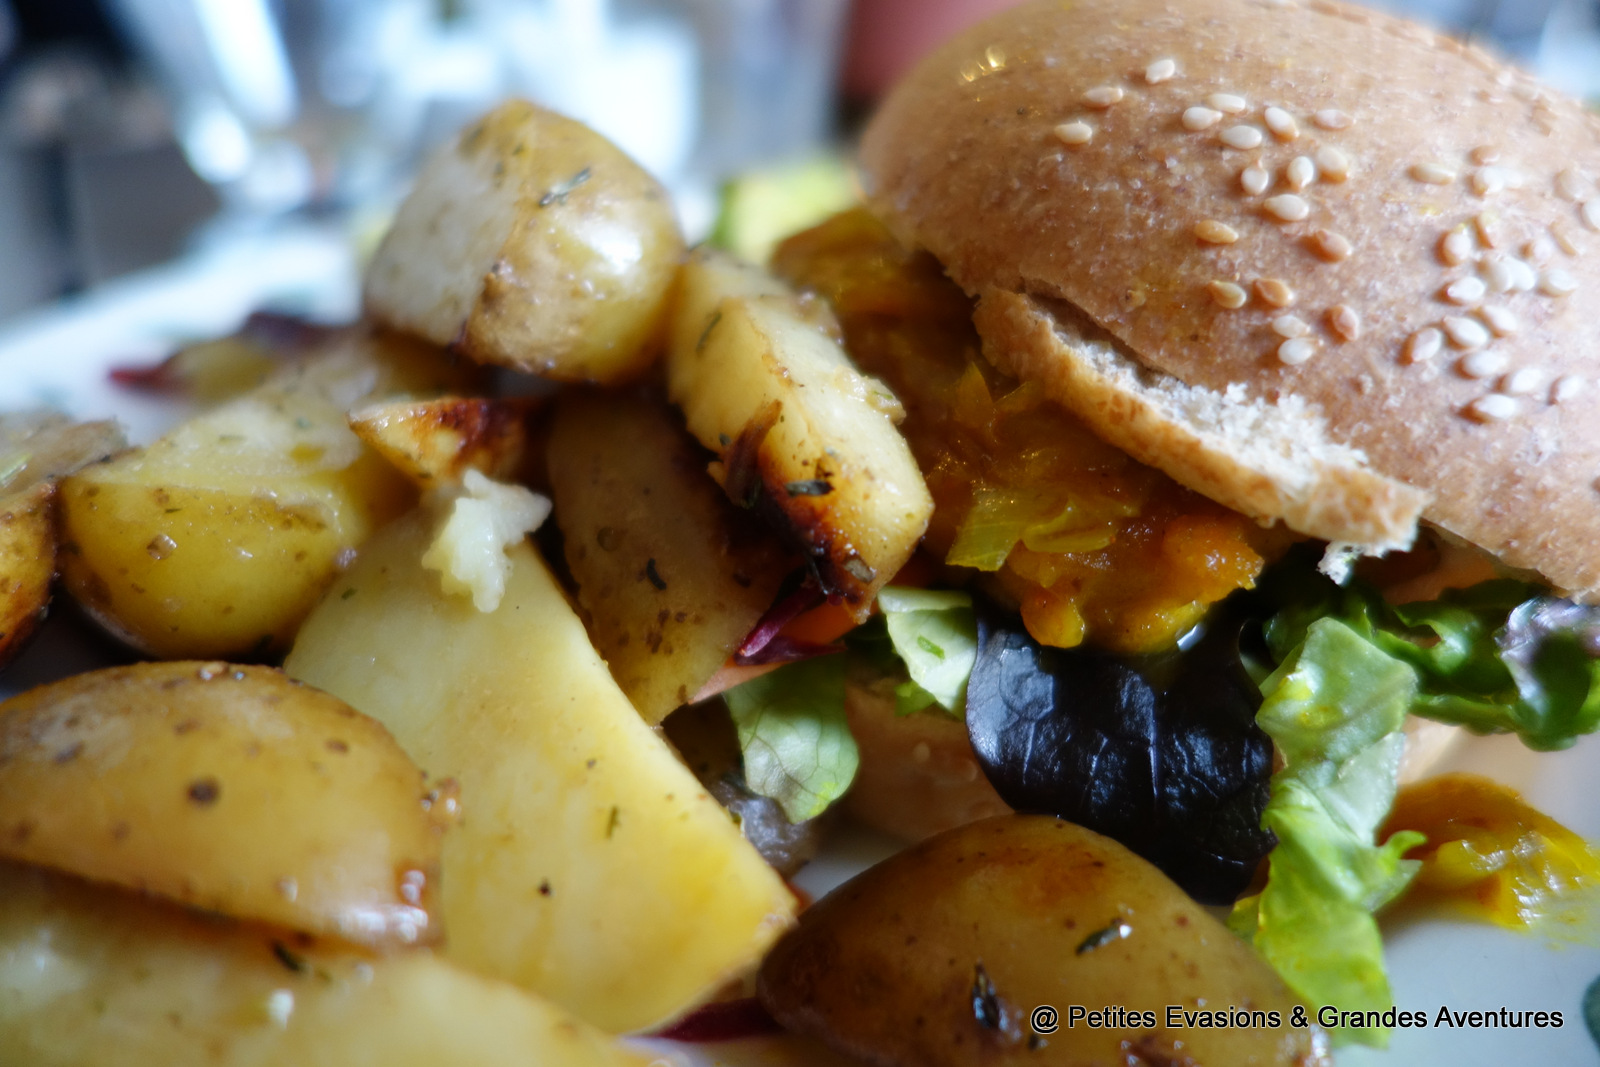 Burgen vegan et potatoes